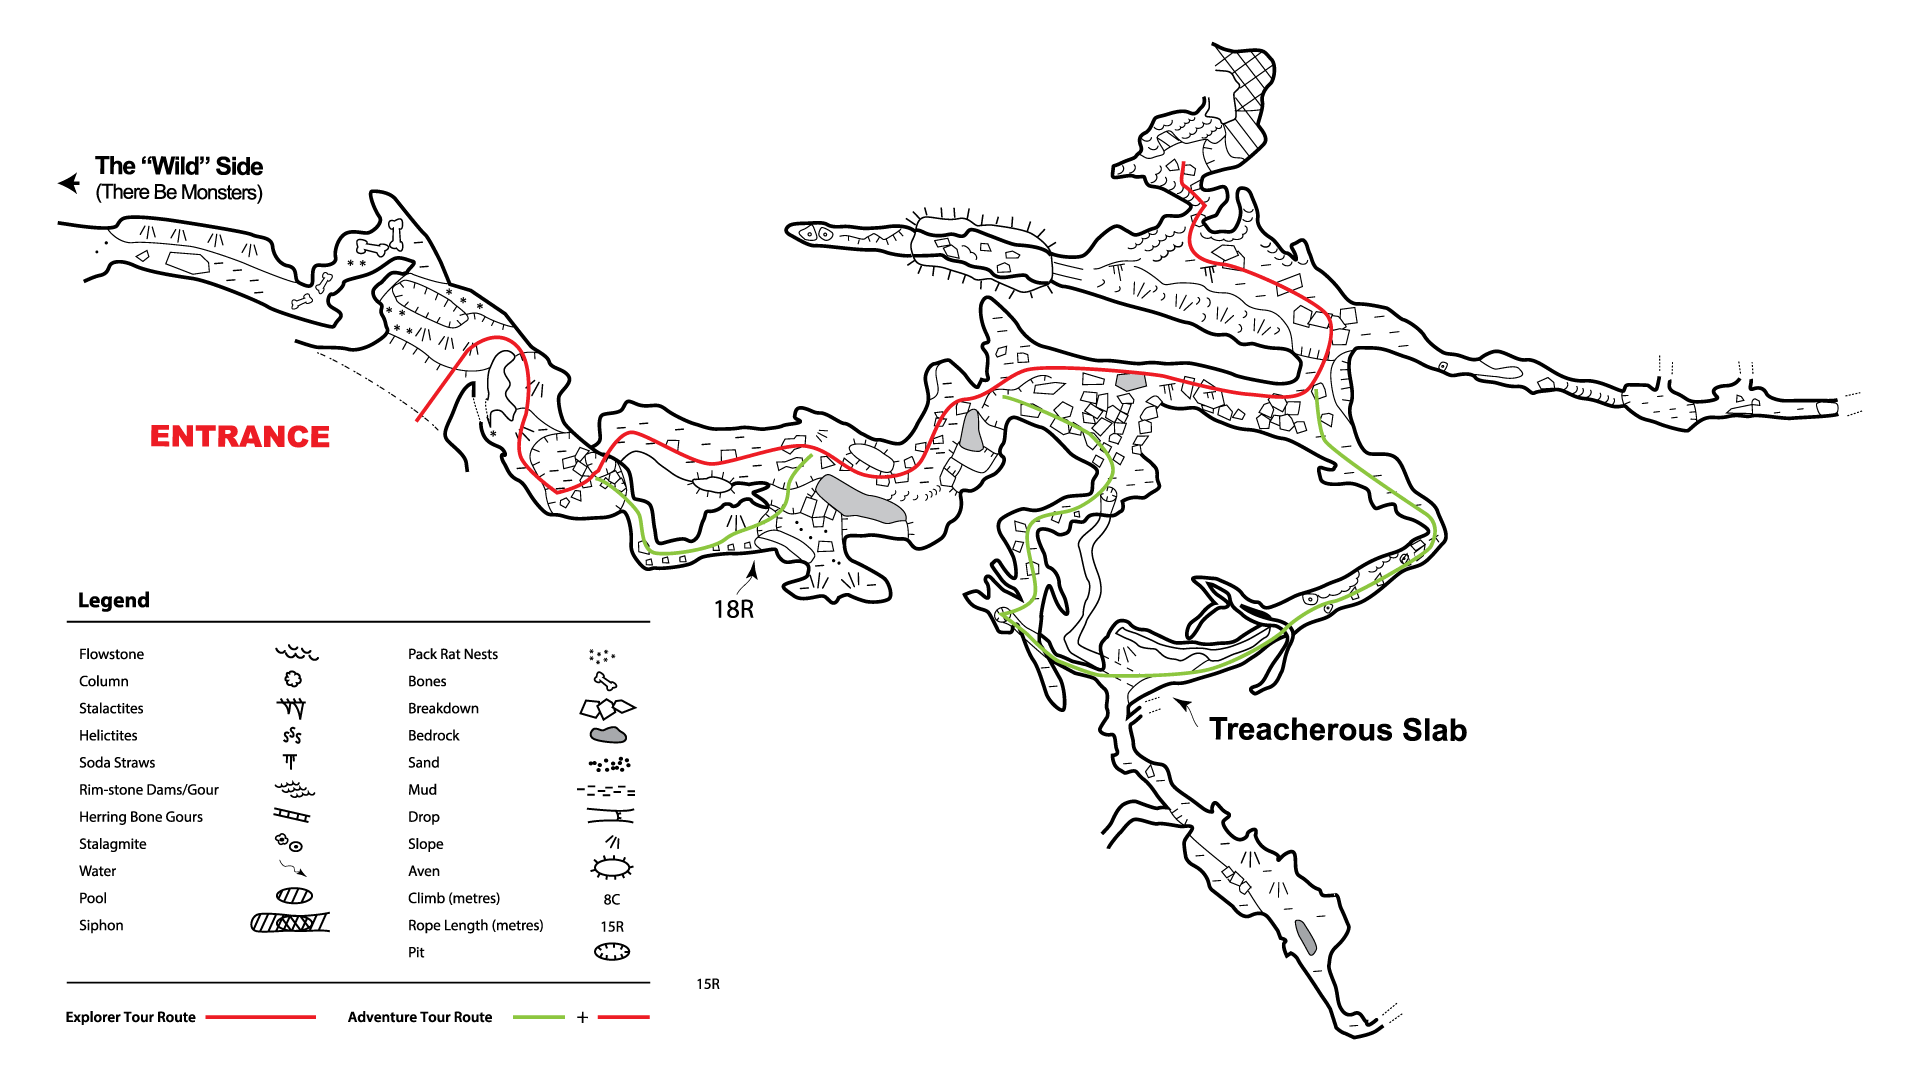 Rat's Nest Map of Canmore Cave Tours